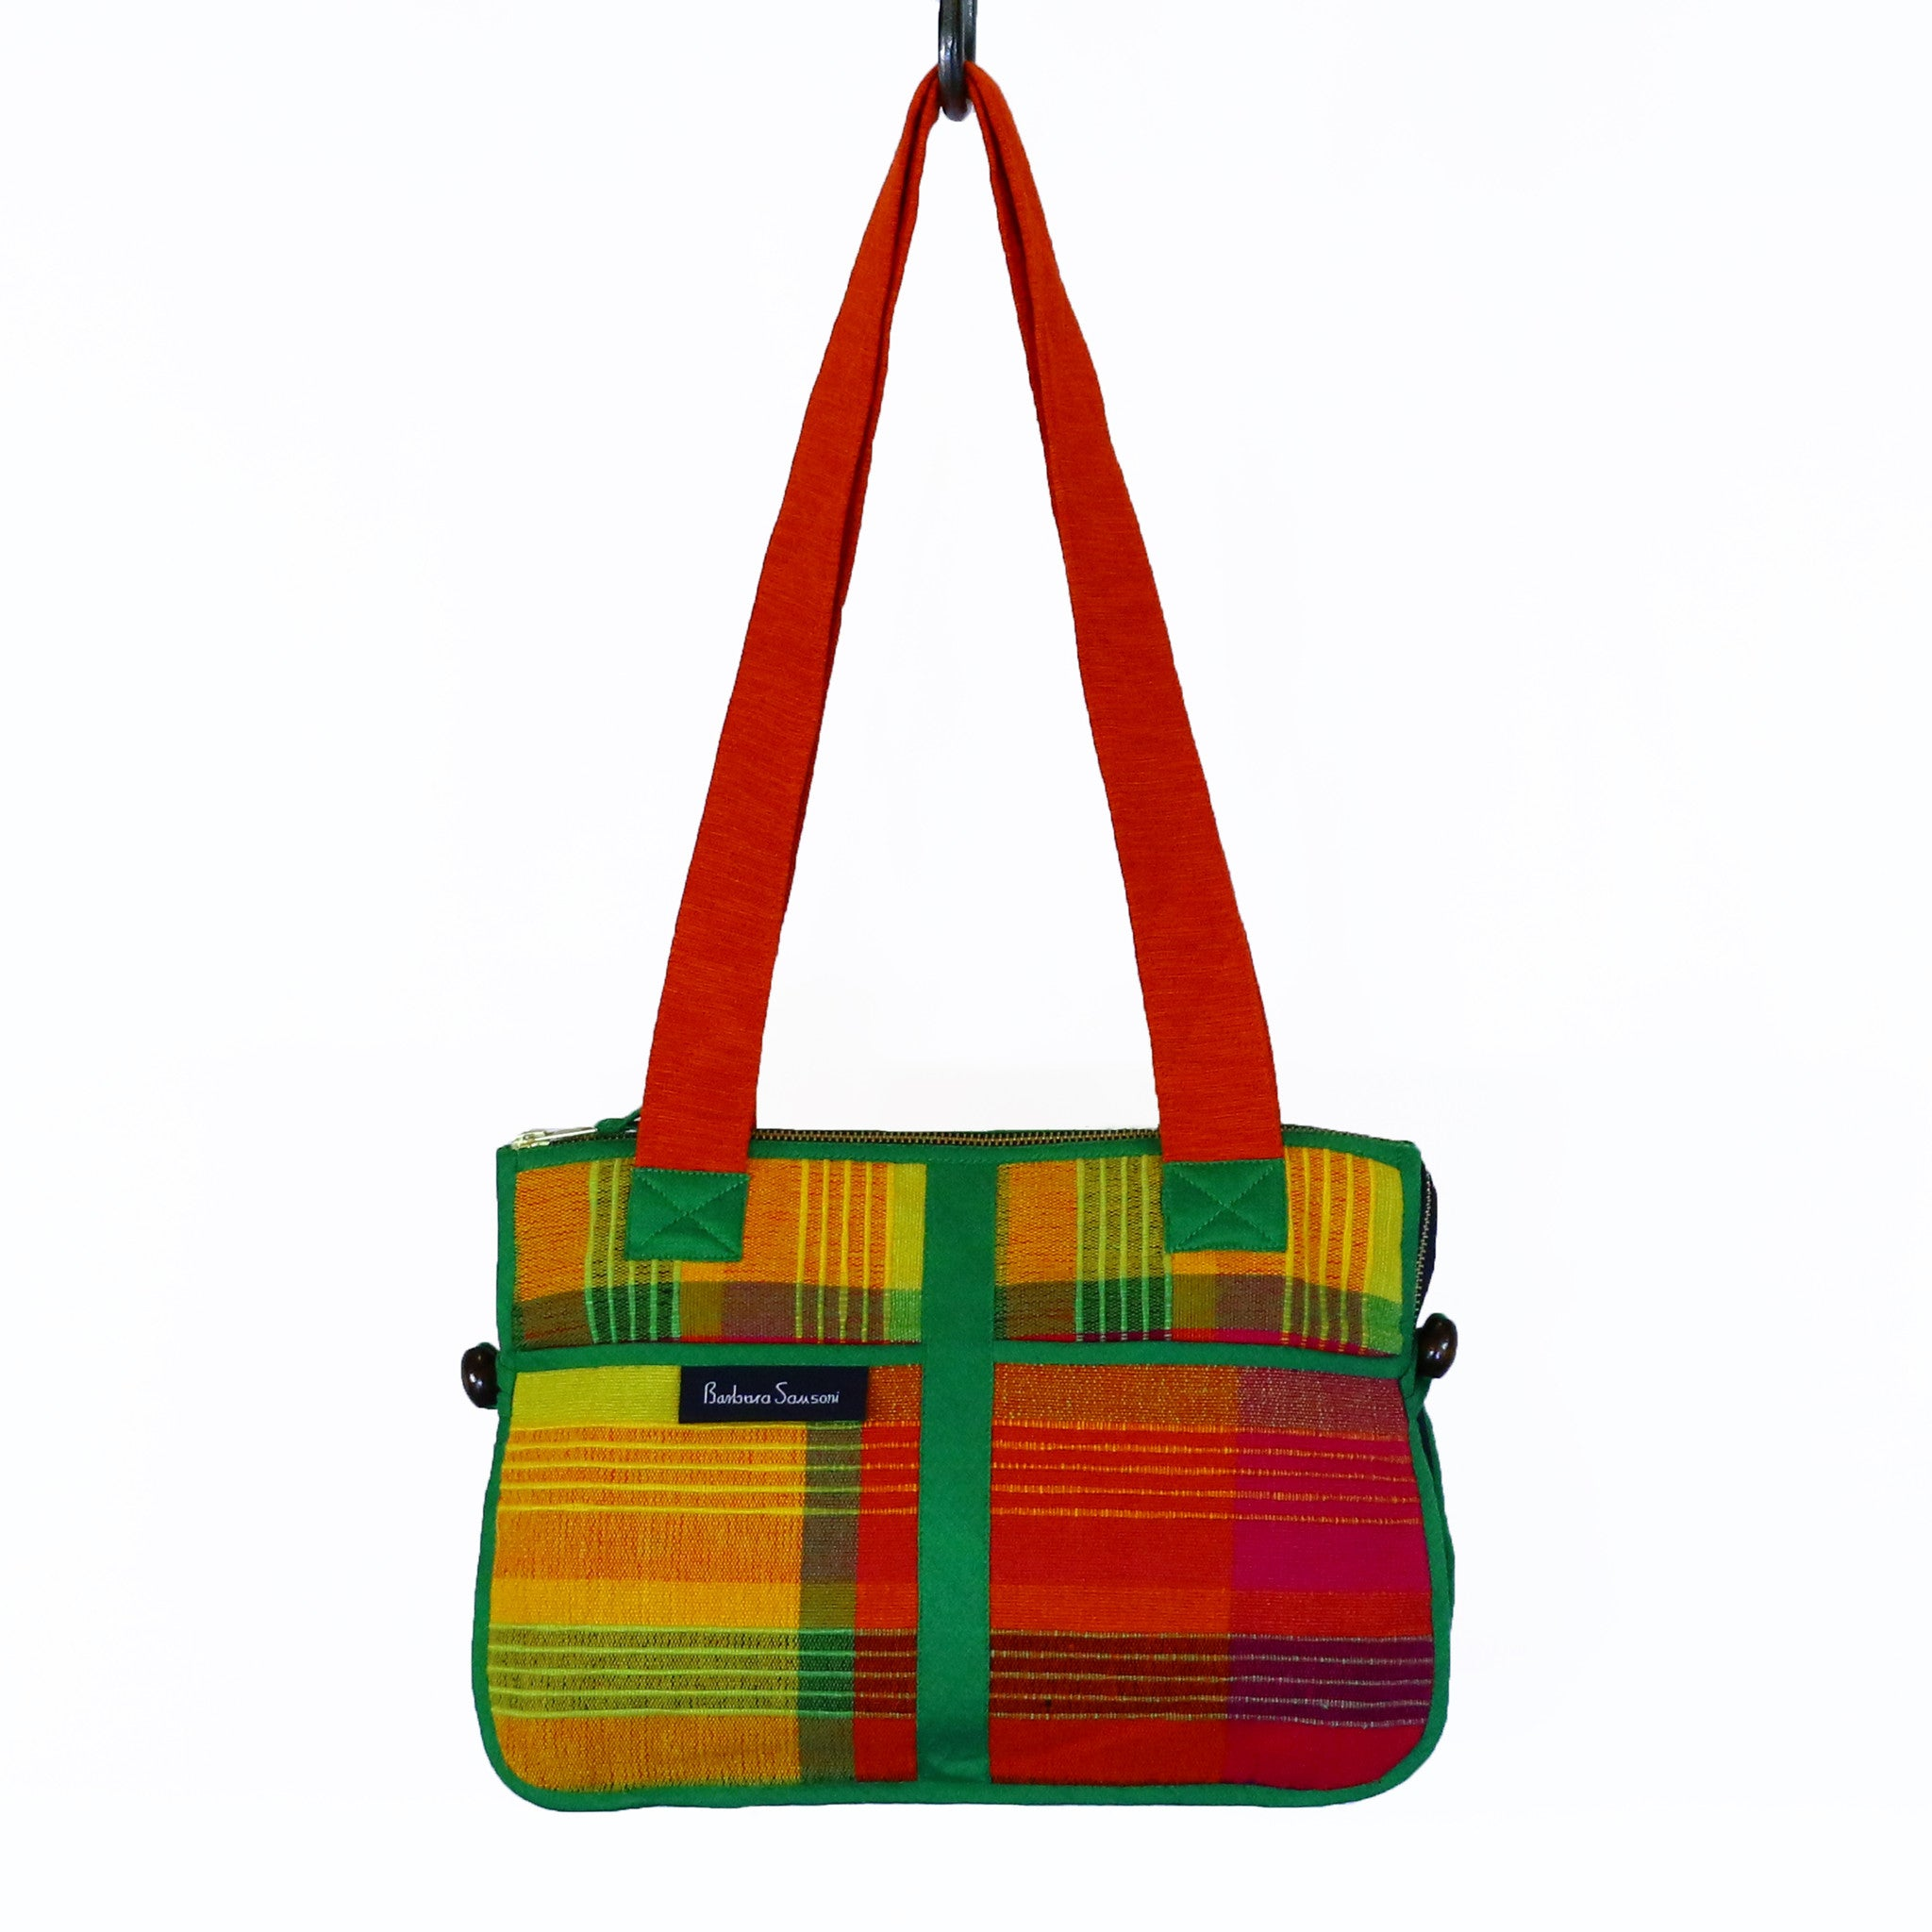 Barefoot Handwoven Expandable Shoulder Bag - Papaya fabric shown